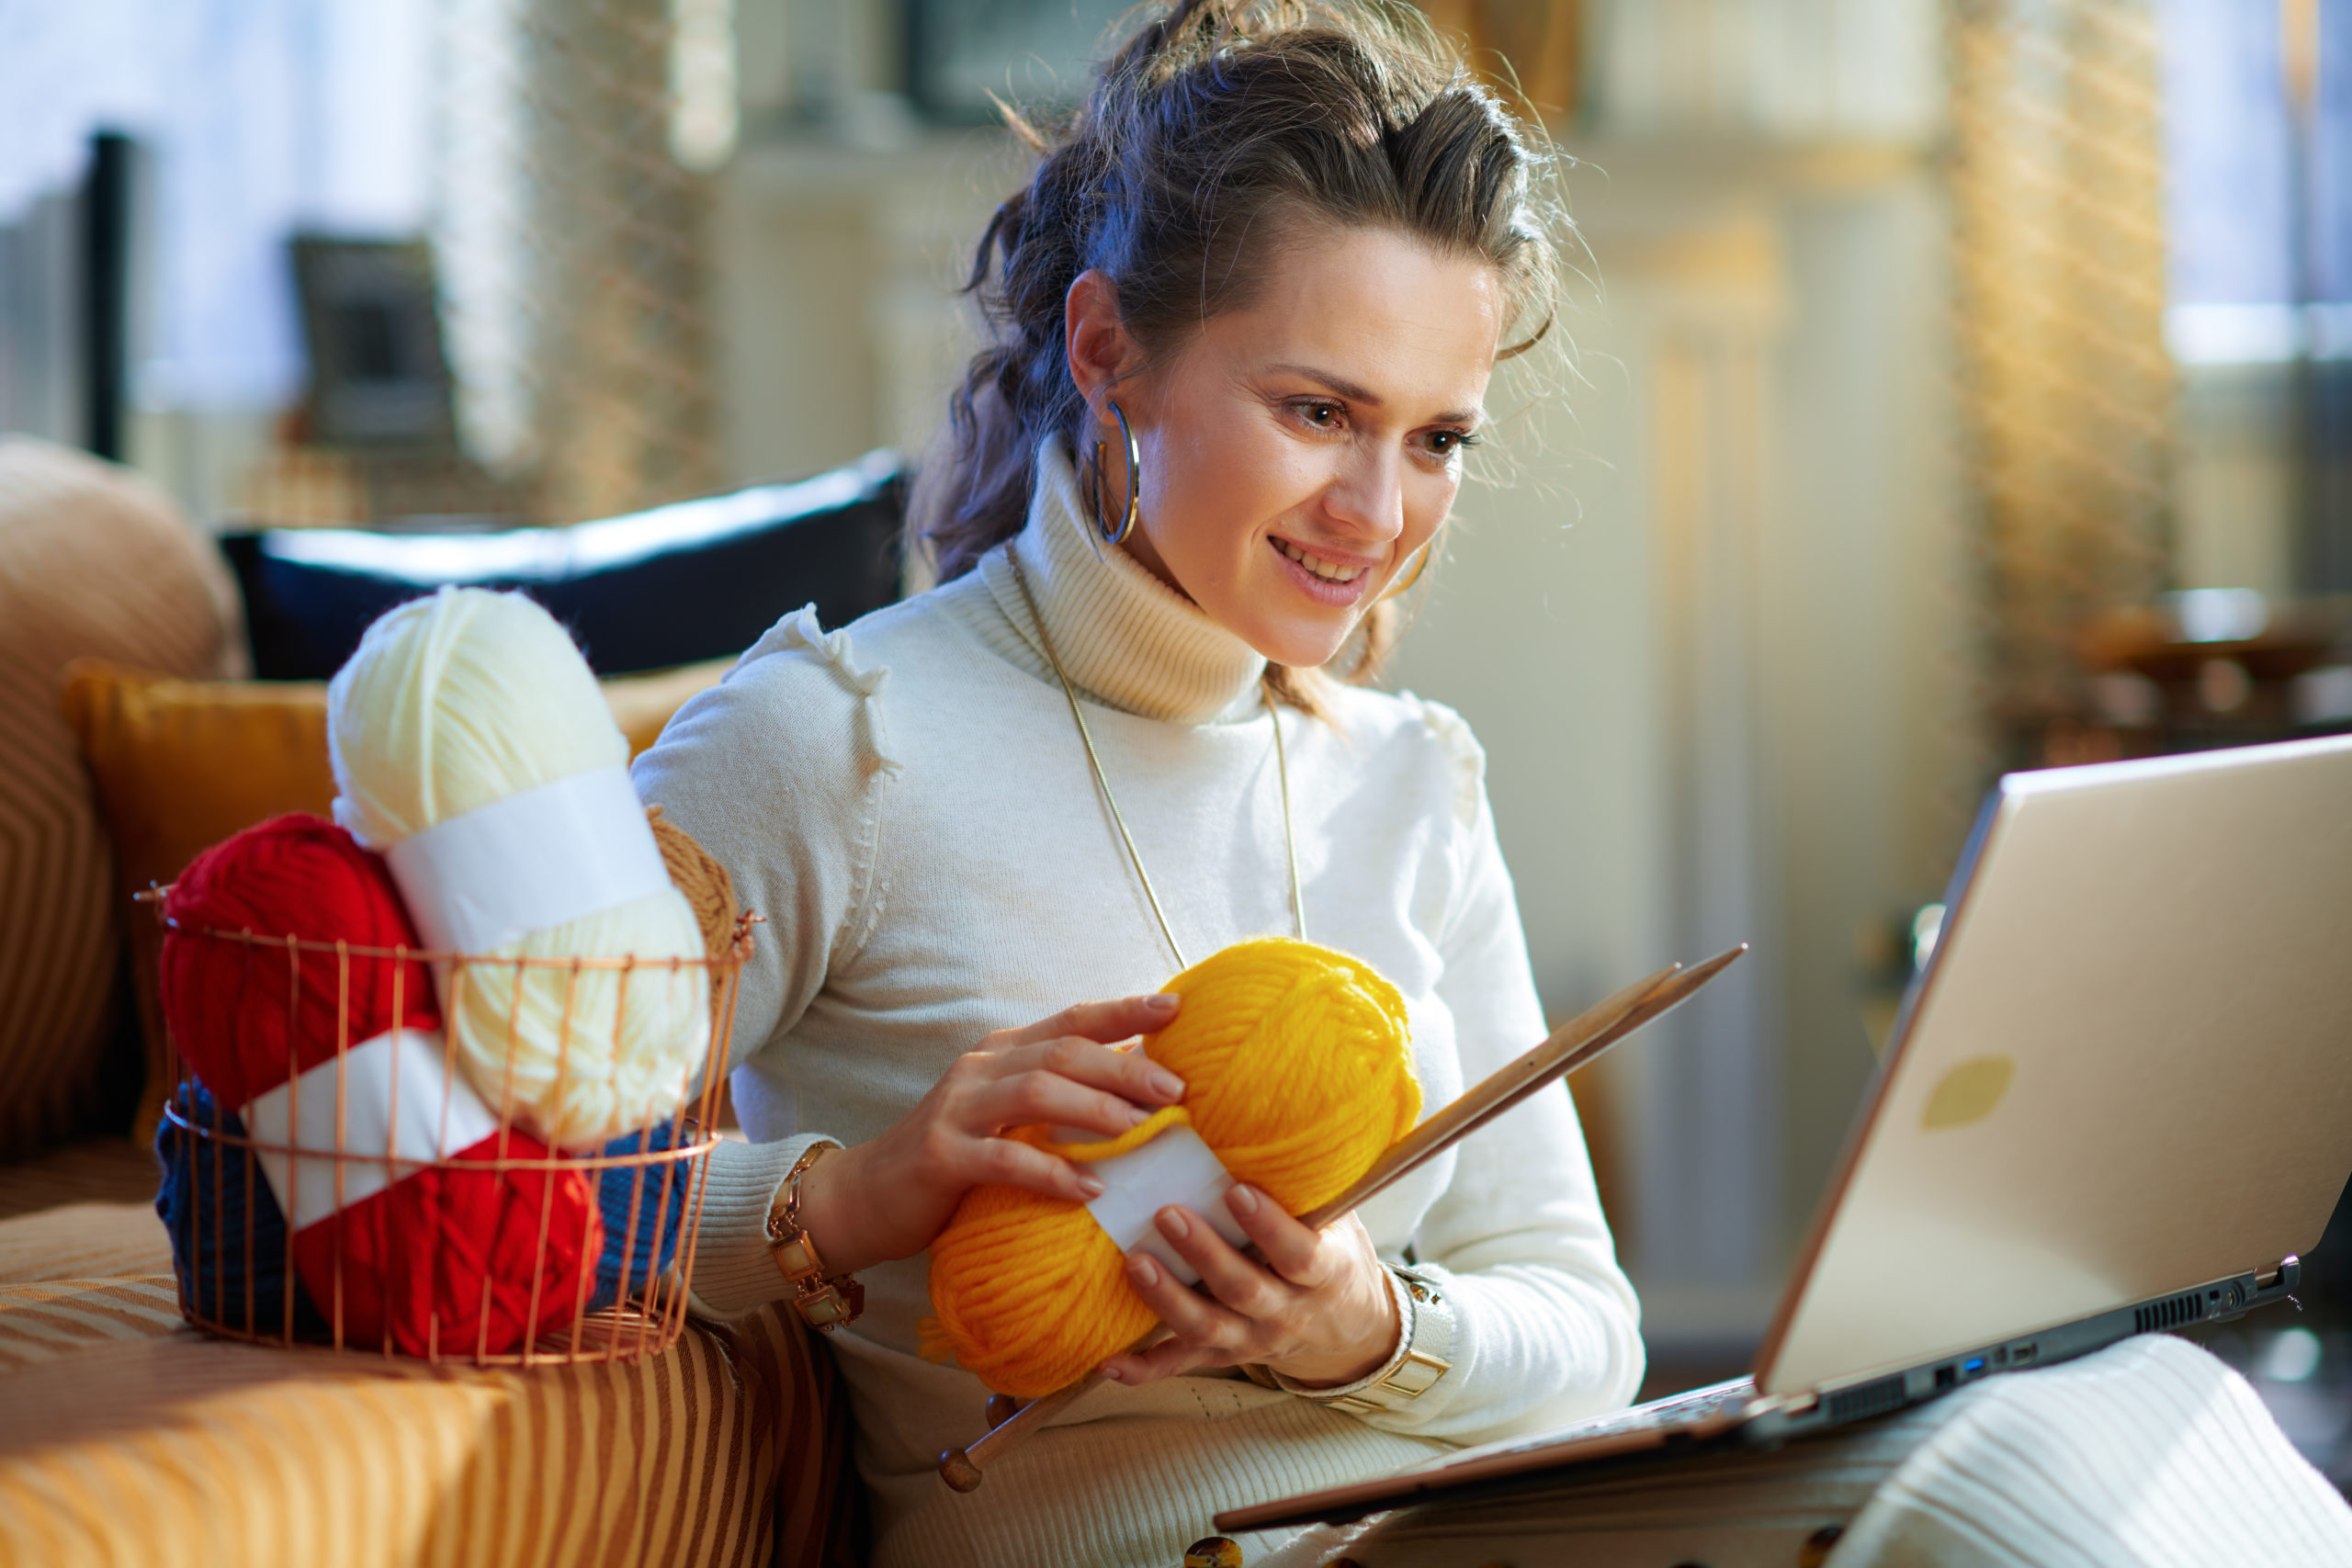 A woman participating in a virtual knitting event on her laptop.